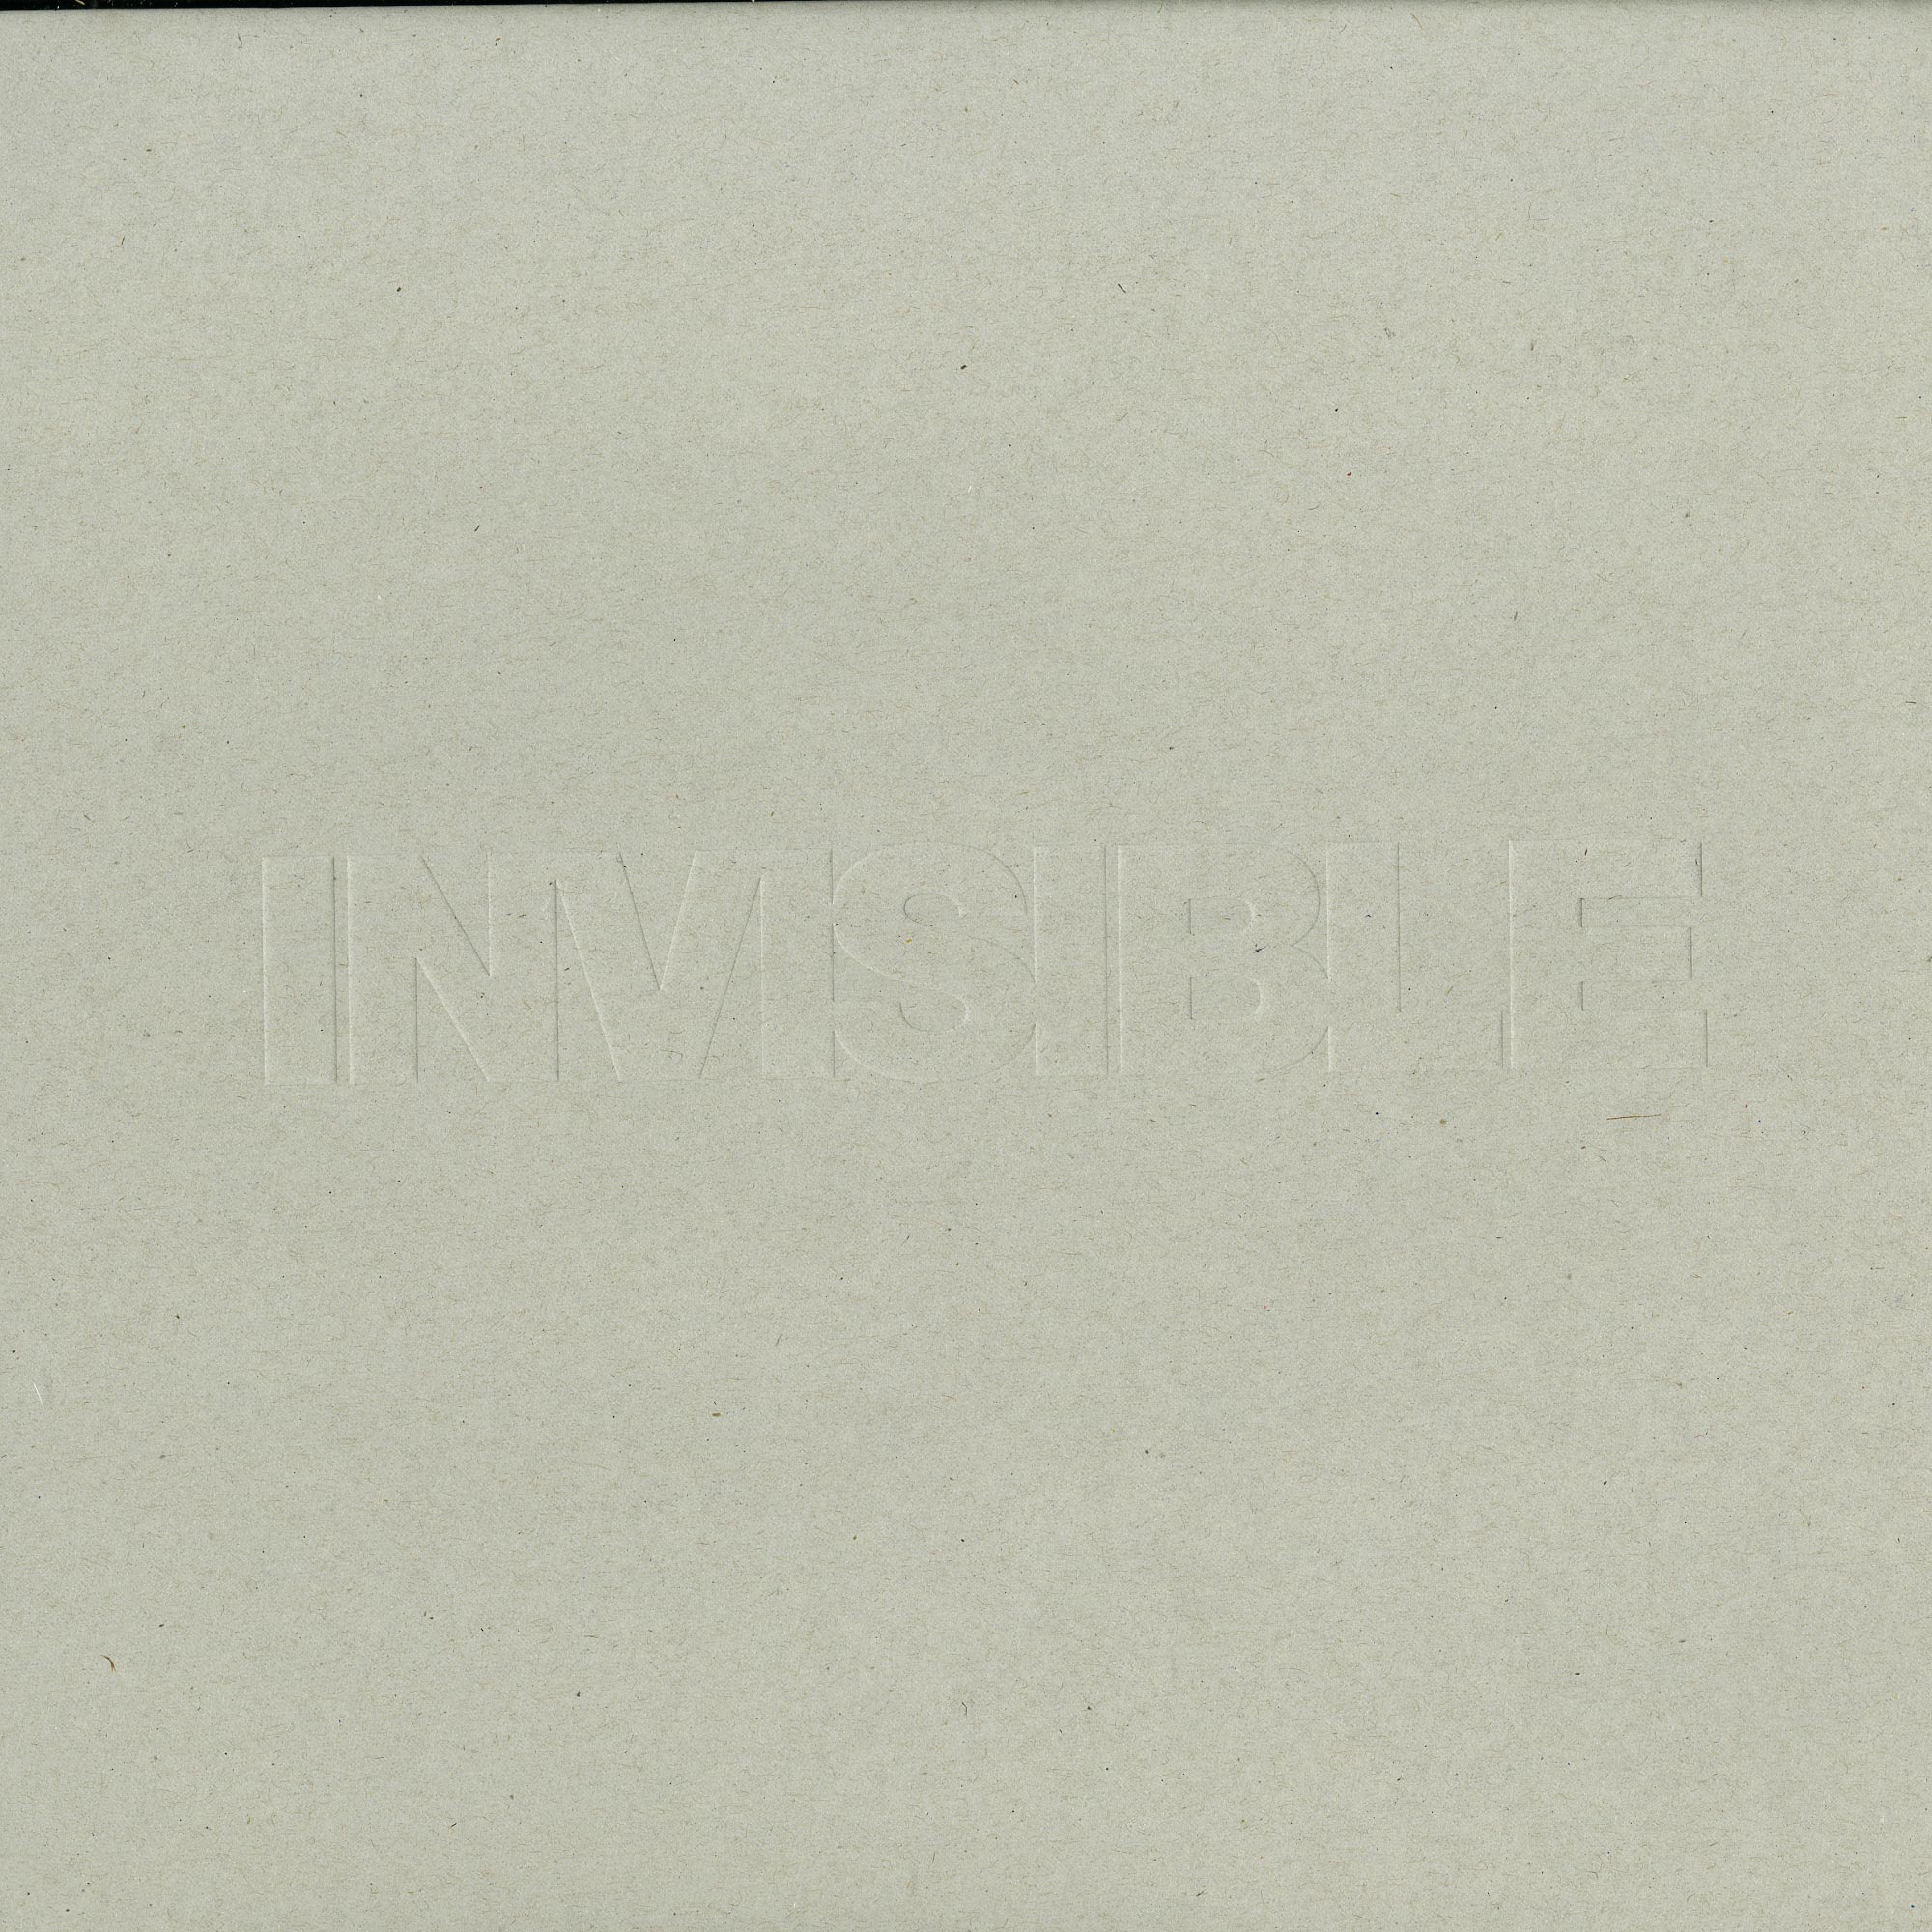 Nickbee / Axon / Noisia / Fre4knc - INVISIBLE 006 EP